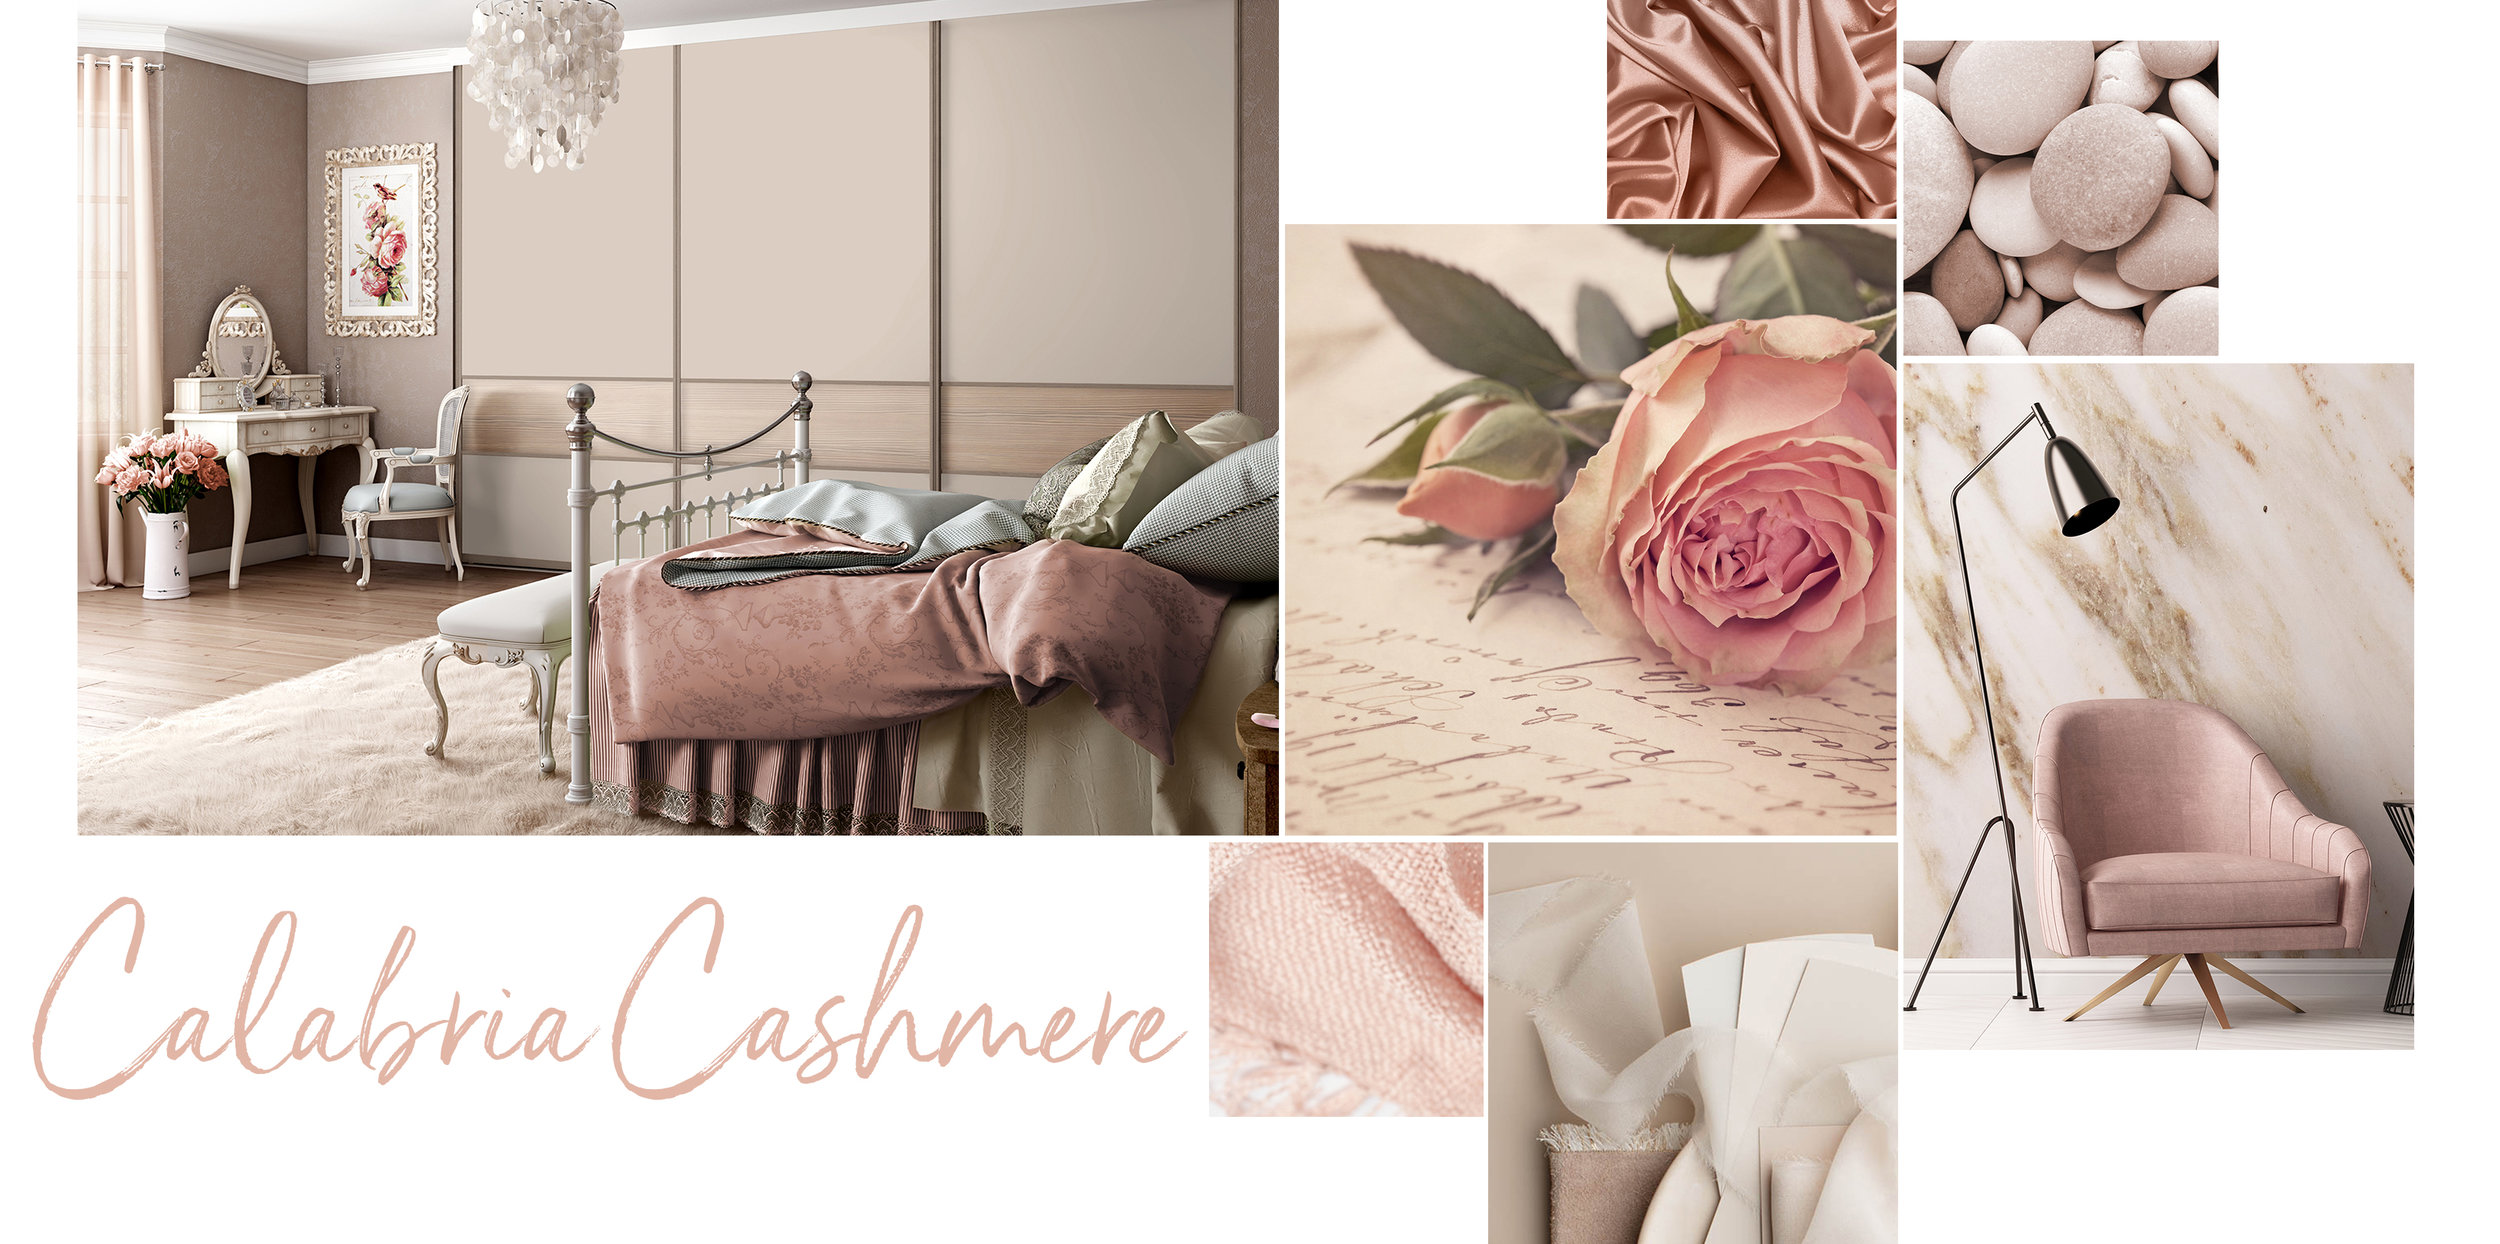 'Calabria Cashmere' is the most feminine of all our palettes. This unmistakable collection of Parisian chic colours ranges from dusky pinks and taupe shades, mixed with subtle woodgrains to offer a truly romantic feel for any bedroom interior.